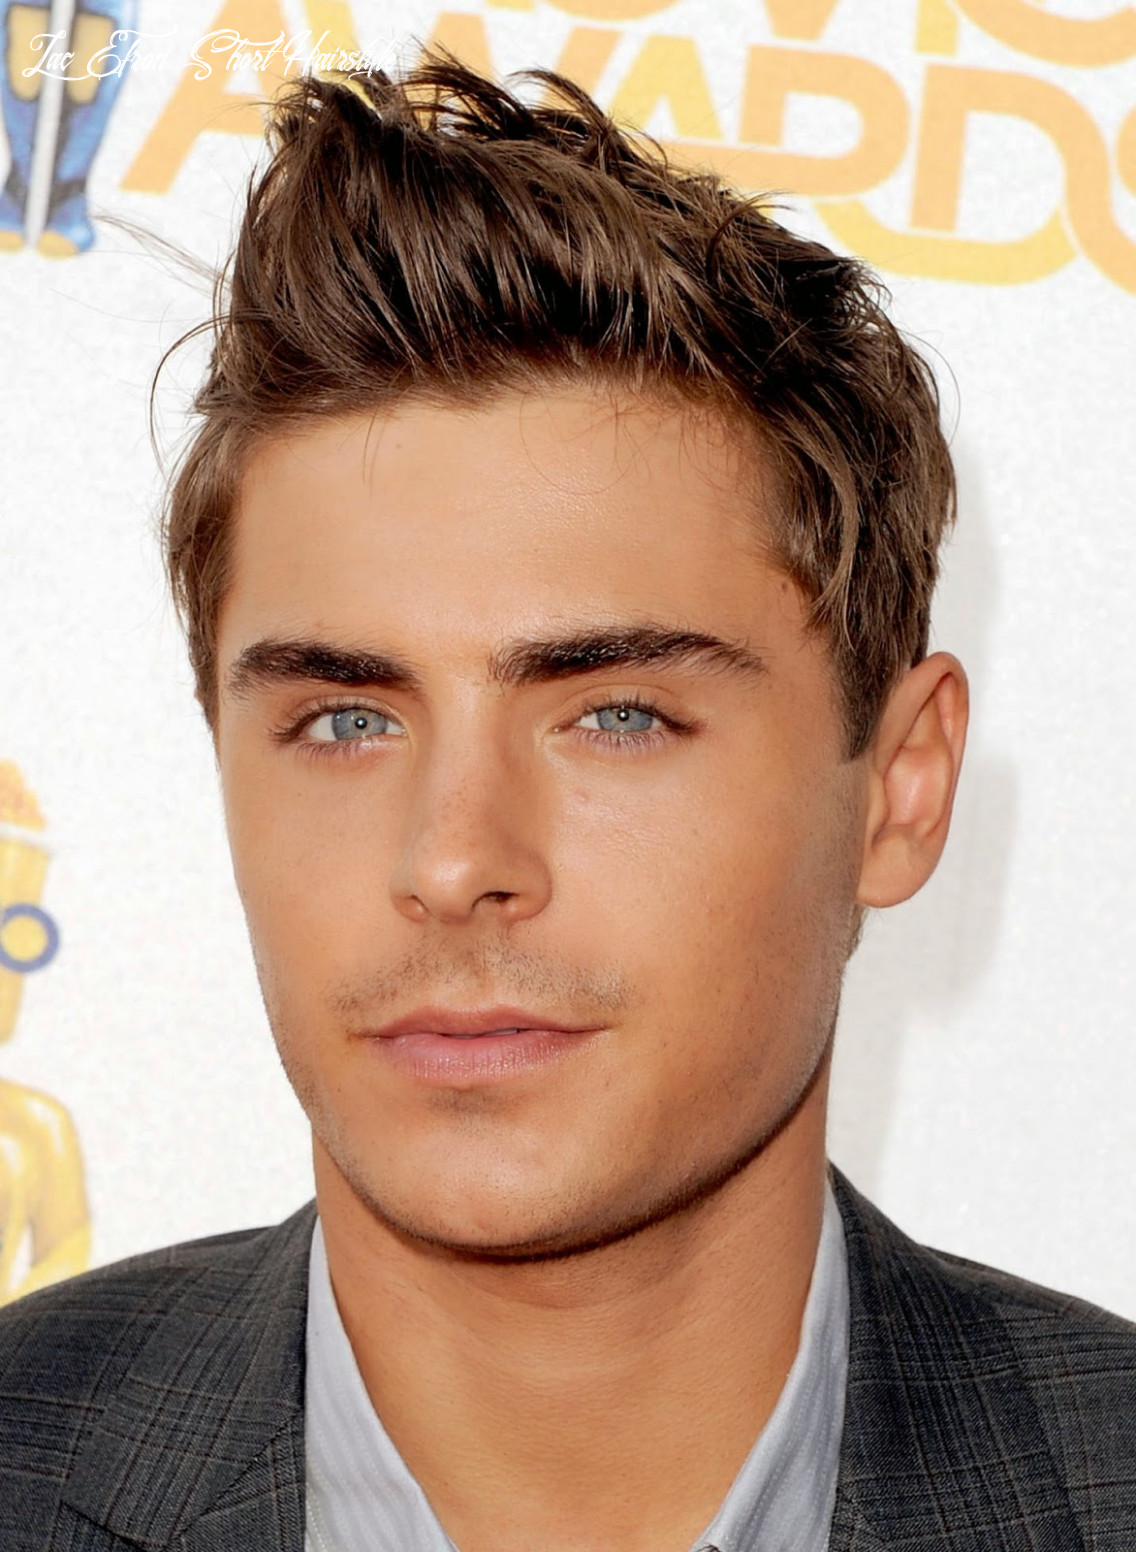 Latest zac efron hairstyles ideas photo #12 inspiring mode zac efron short hairstyle